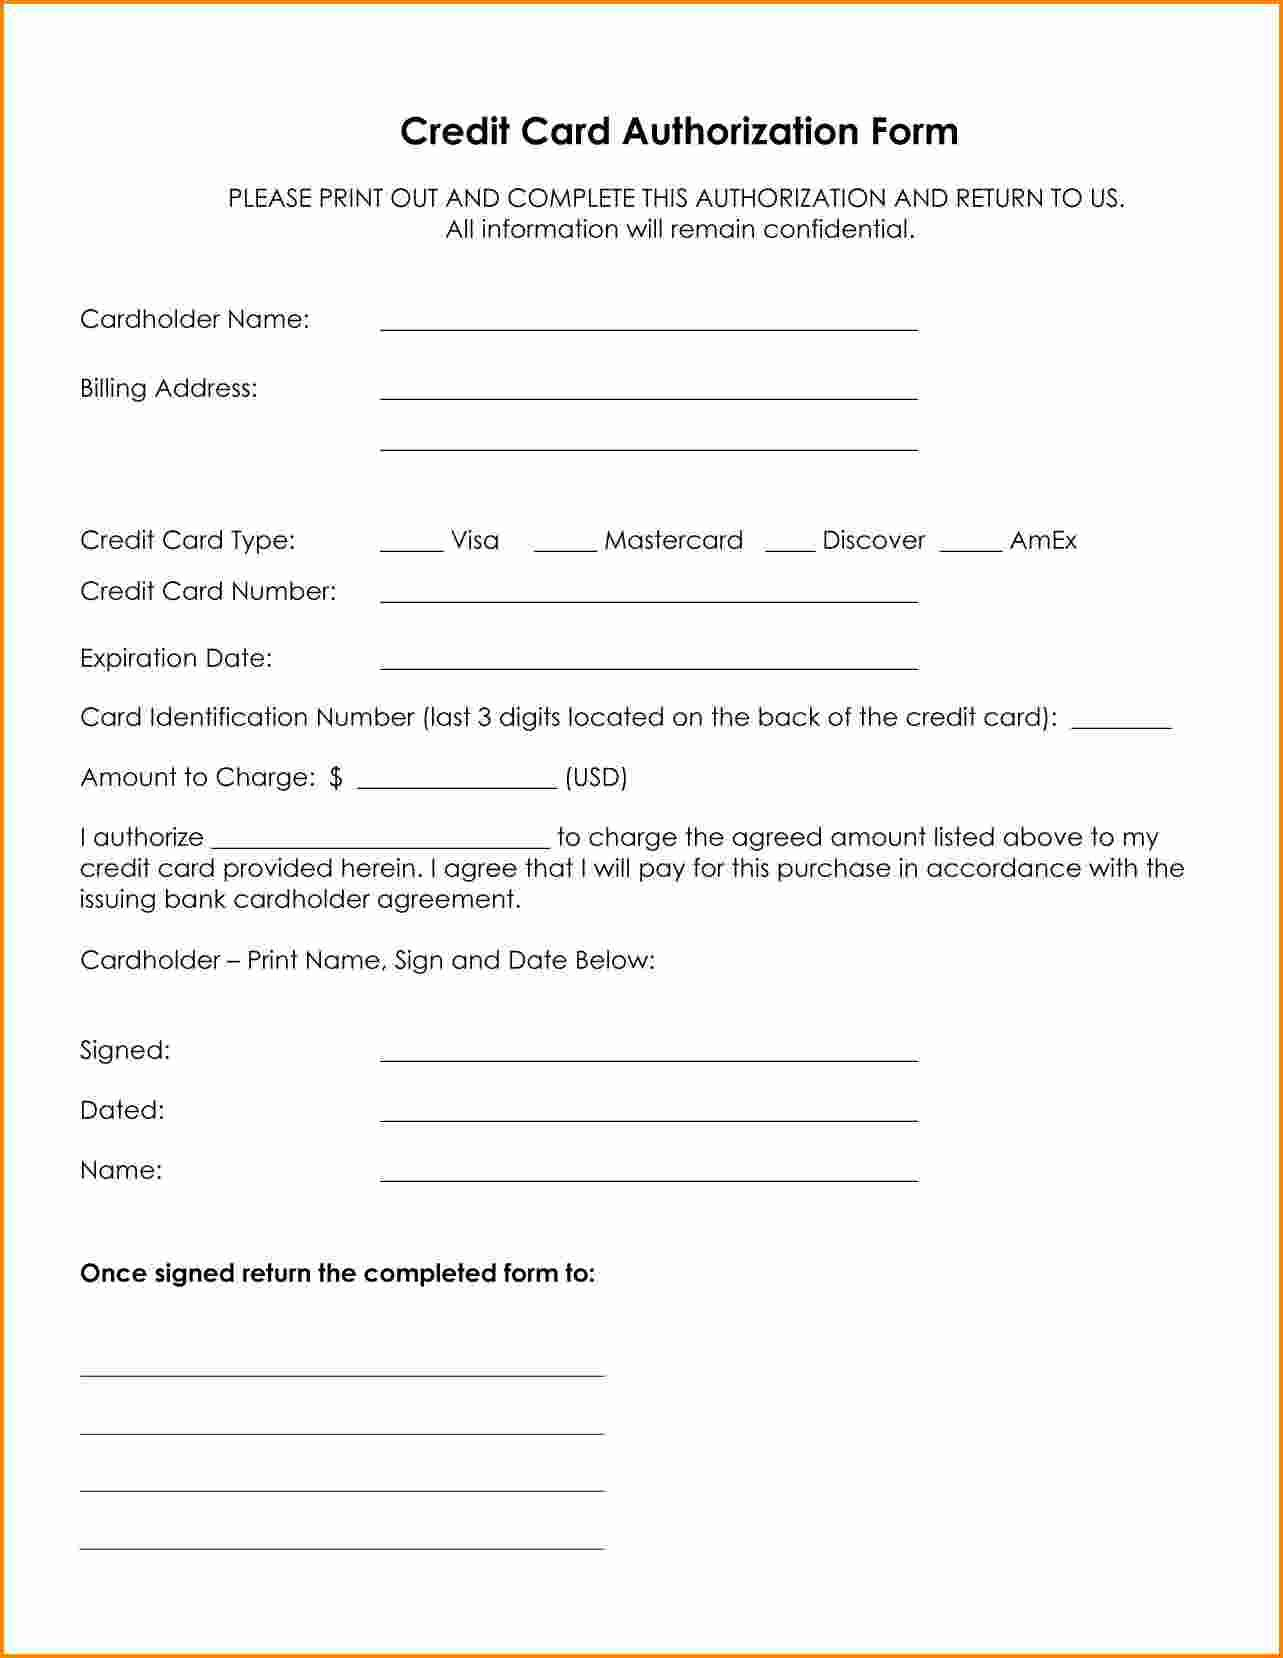 Credit Card Authorization Form Template Word Letter For Passportthorization  Pick  Credit Card Template Word